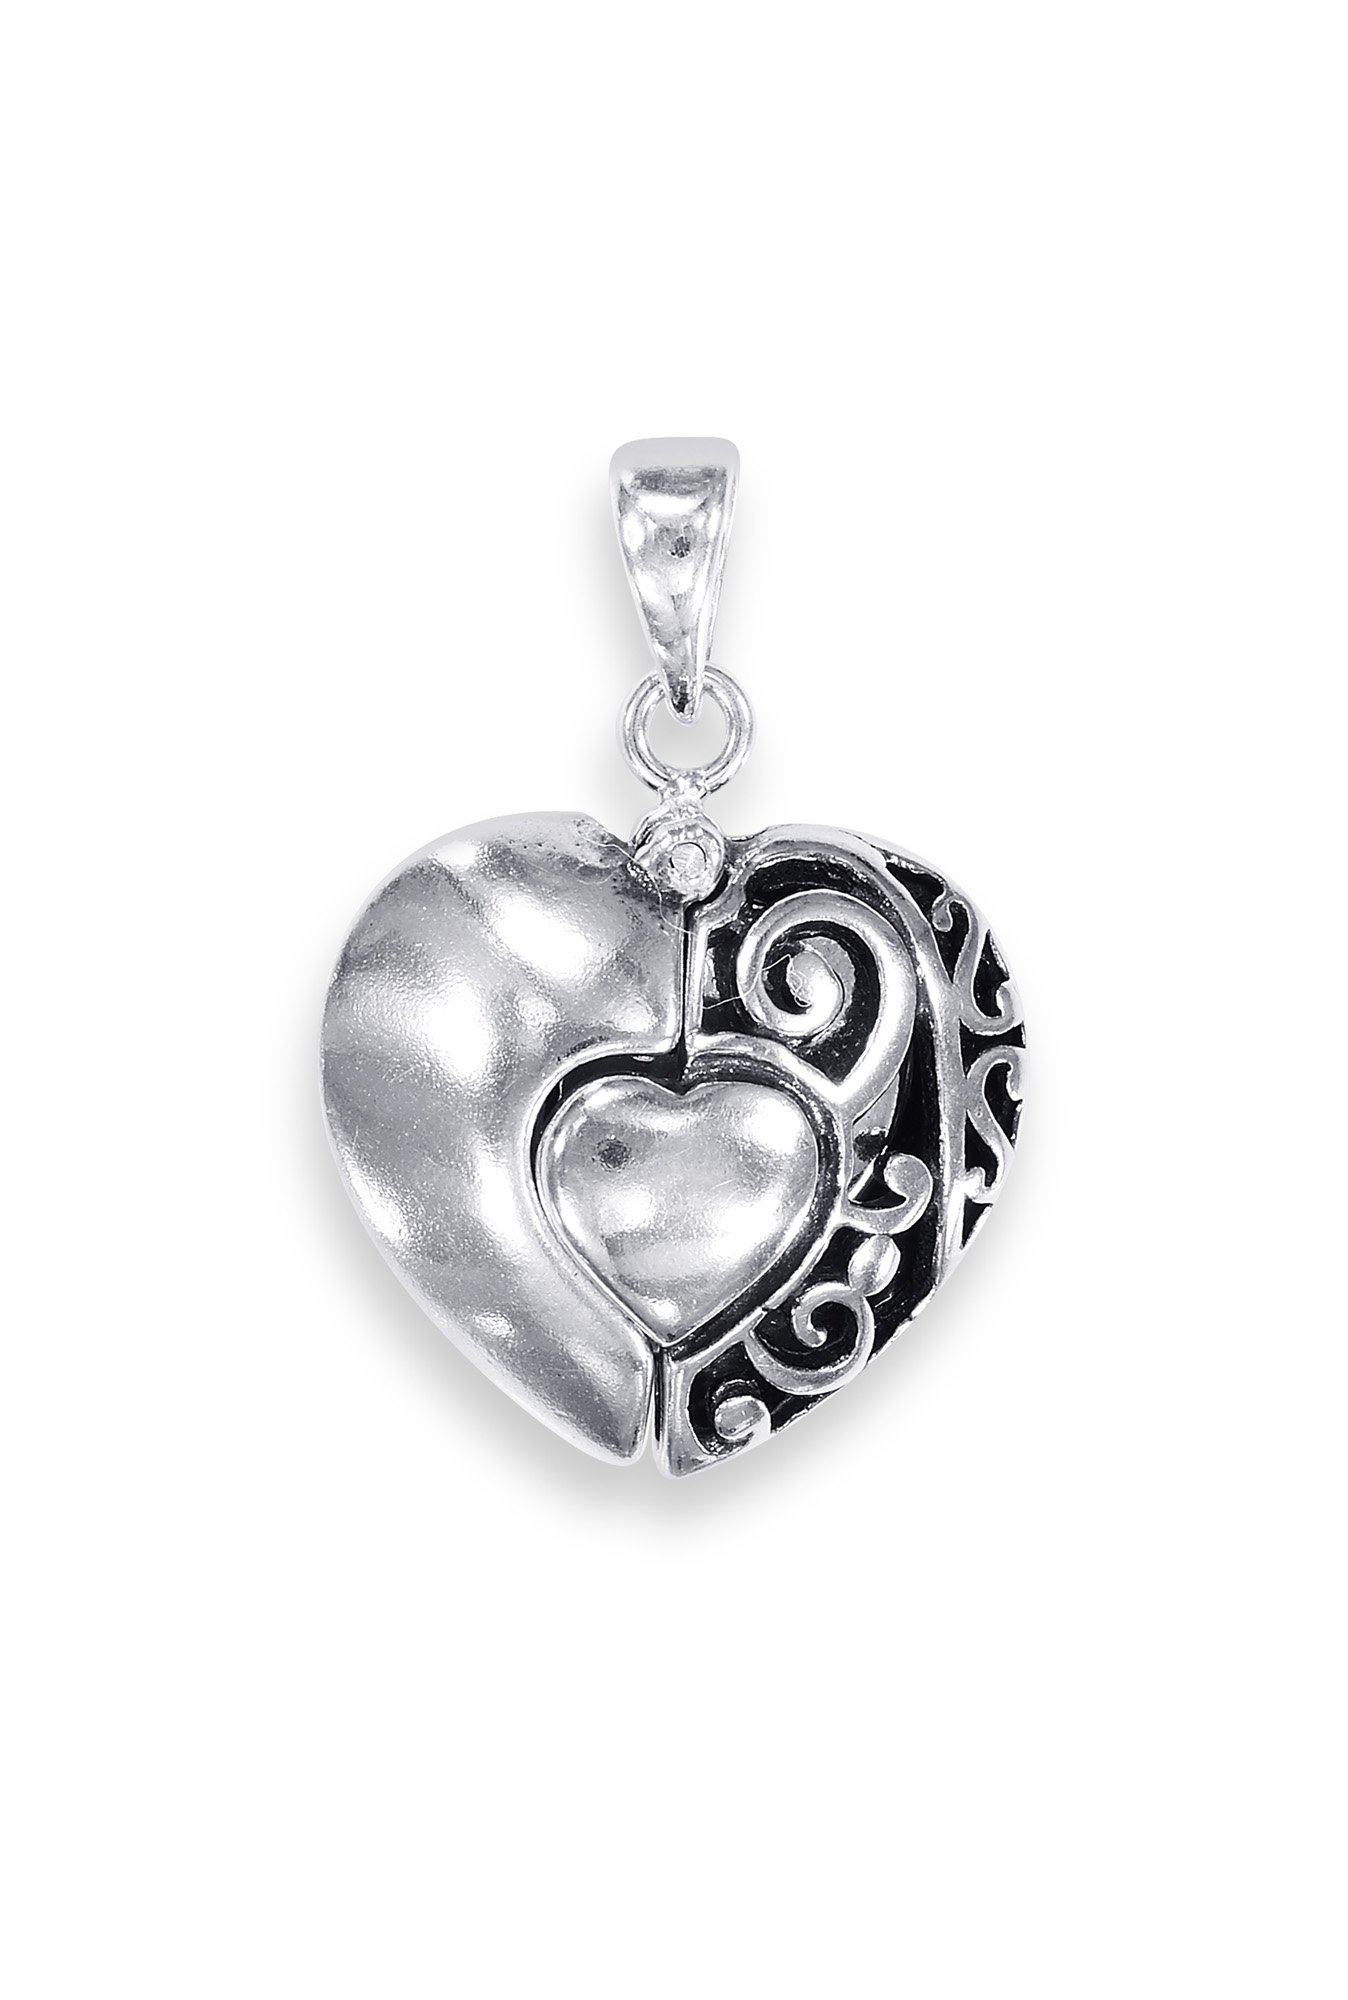 necklace pendant stone couples couple steel on key quality charms book necklaces accessories openable jewelry gift lover love heart from titanium creative item high in